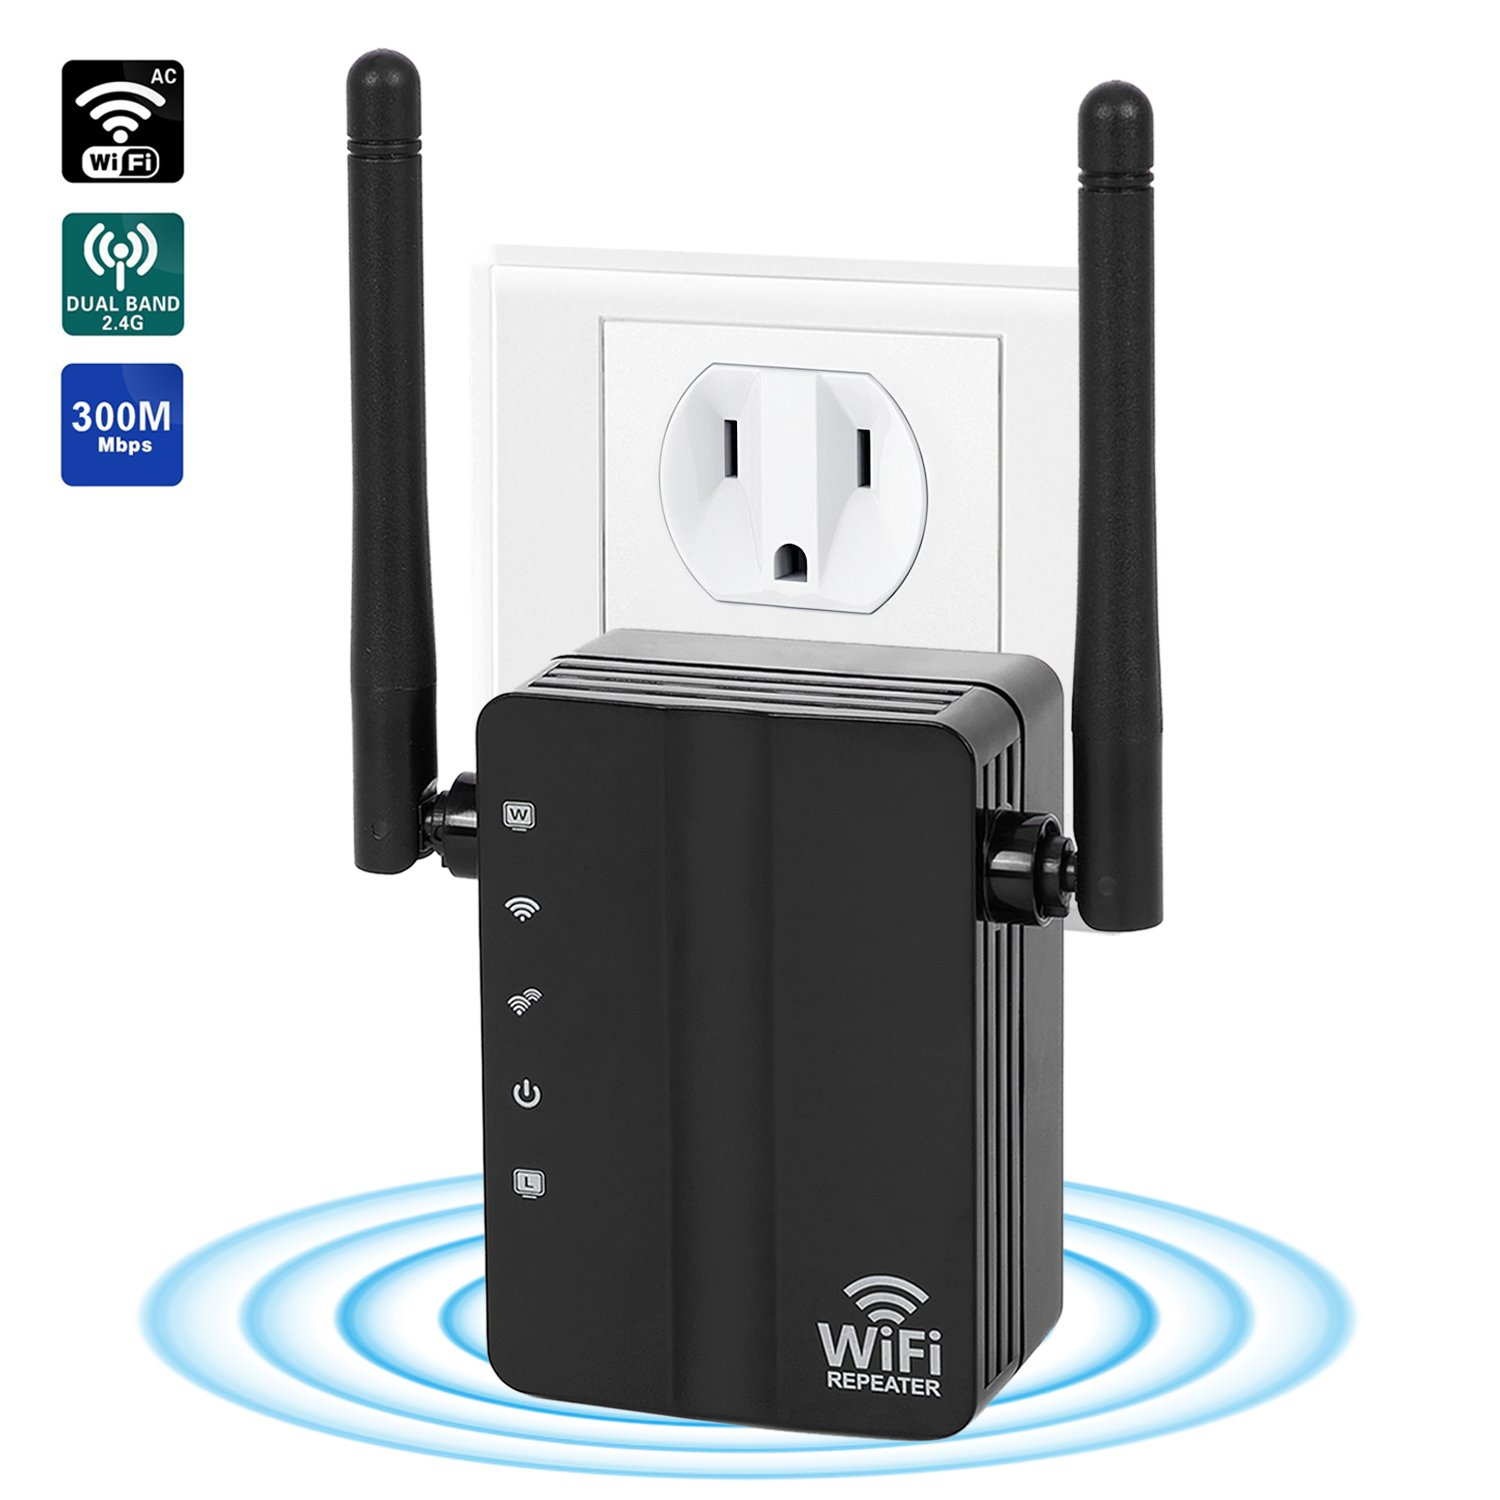 WiFi Range Extender ,300Mbps 2.4G WiFi Repeater Wireless Signal Booster with 360 Degree Full WiFi Covering with High Gain Dual External Antennas High Gain Conventivity  by GuckZahl (Image #1)